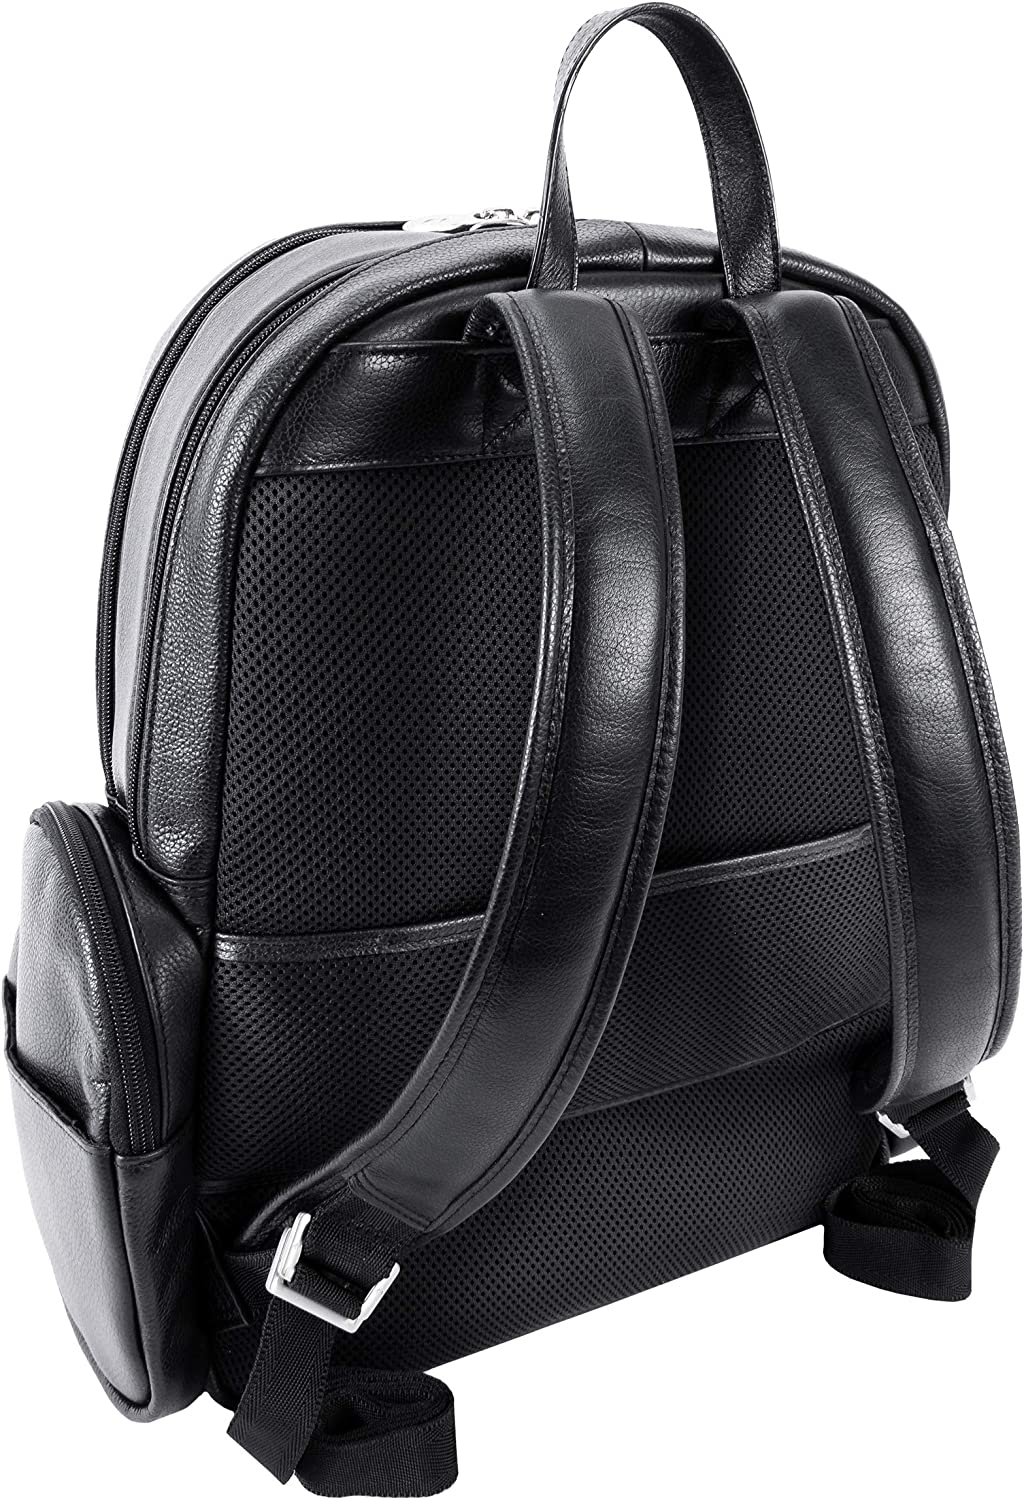 S Series Black McKlein 88365 Pebble Grain Calfskin Leather 15 Leather Dual Compartment Laptop Backpack Cumberland